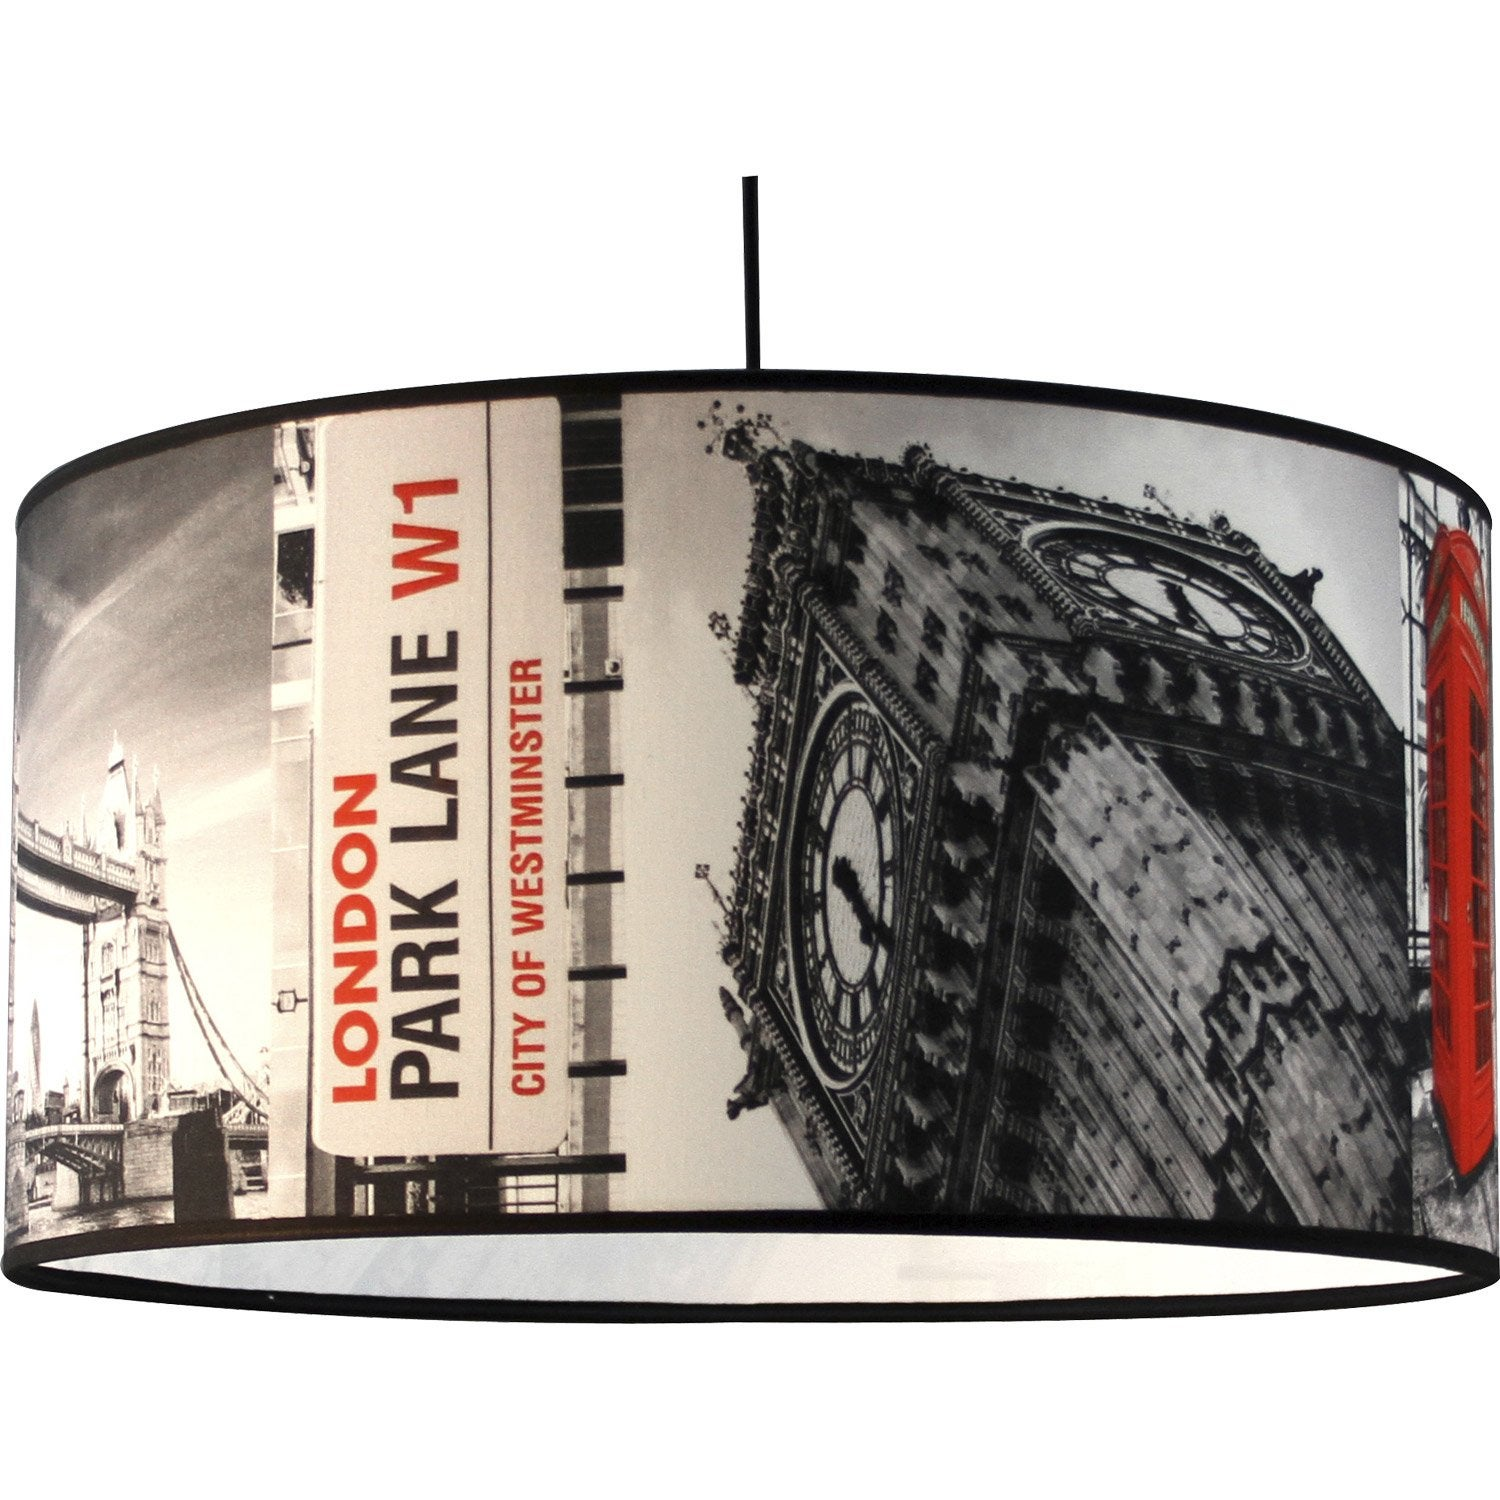 Suspension pop londres big ben tissus multicolore 1 x 60 w - Deco london pas cher ...